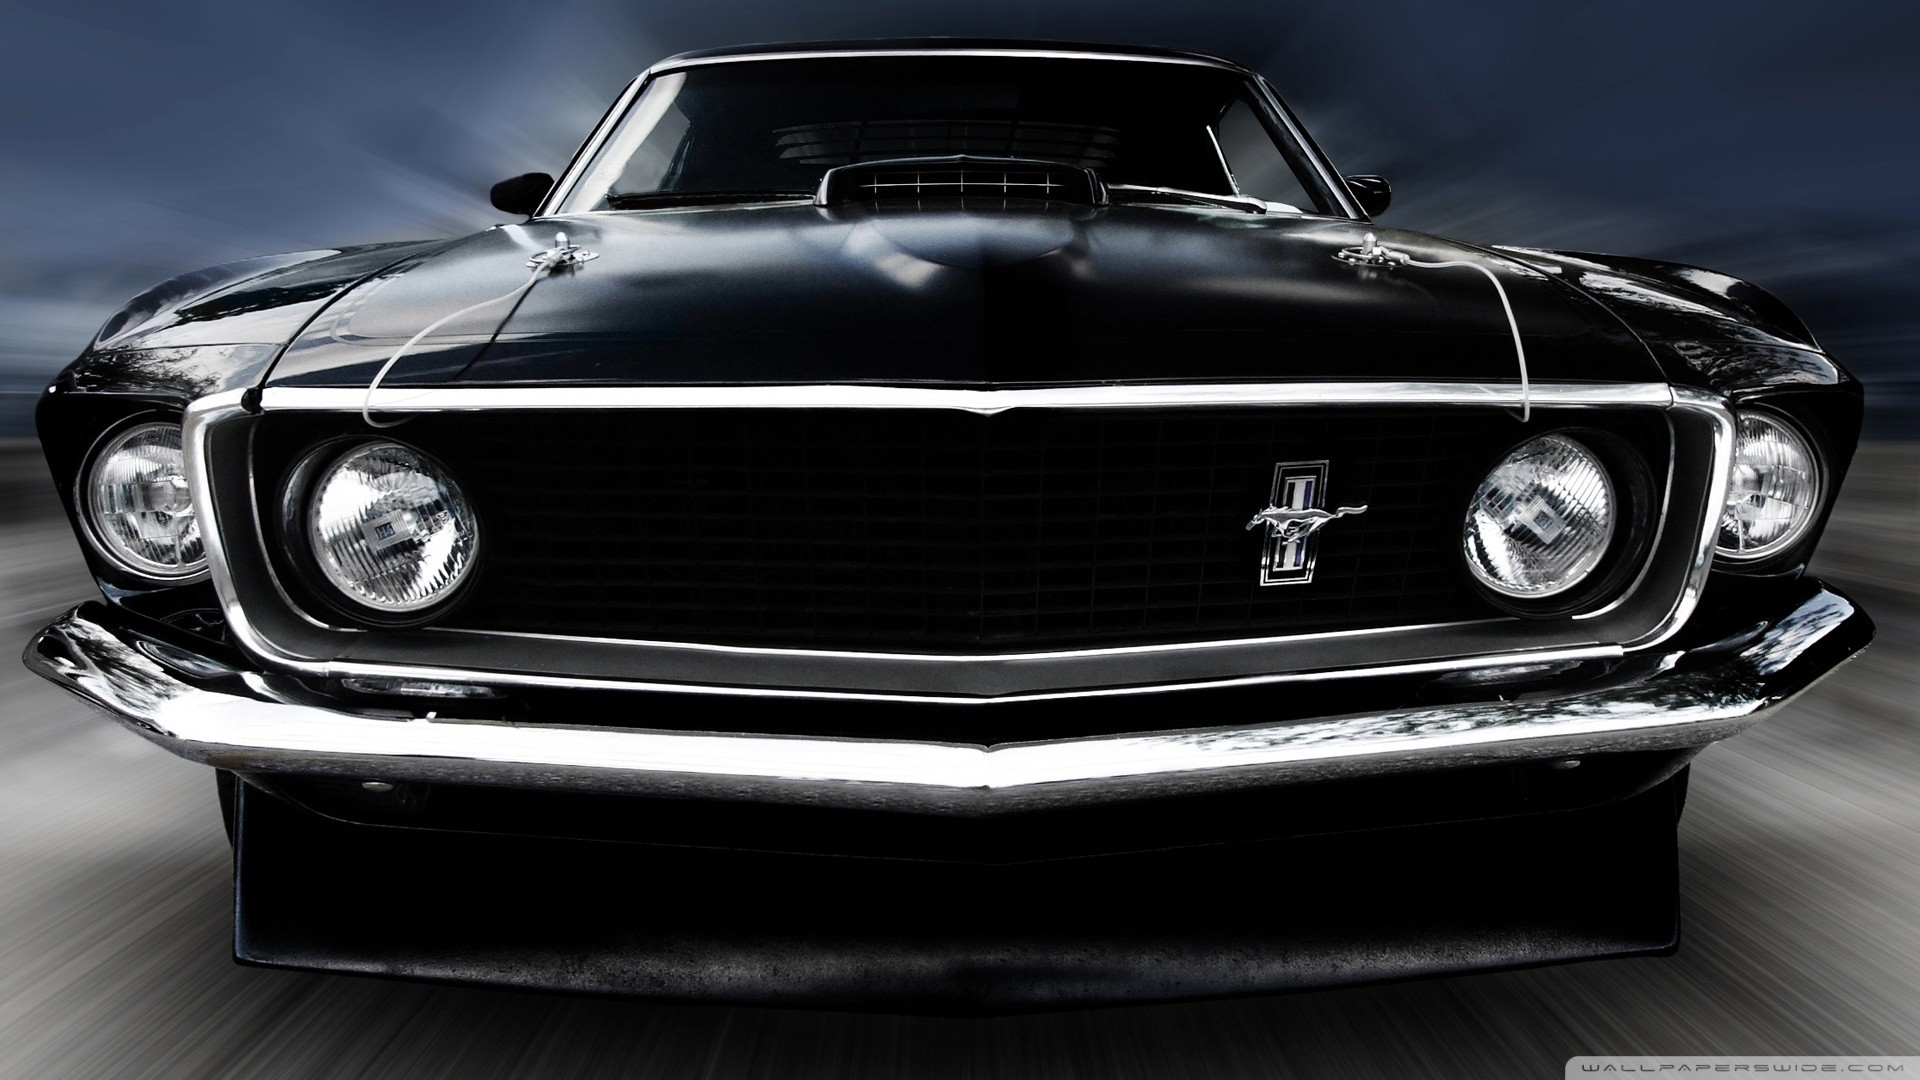 Outstanding Cool Muscle Cars Desktop